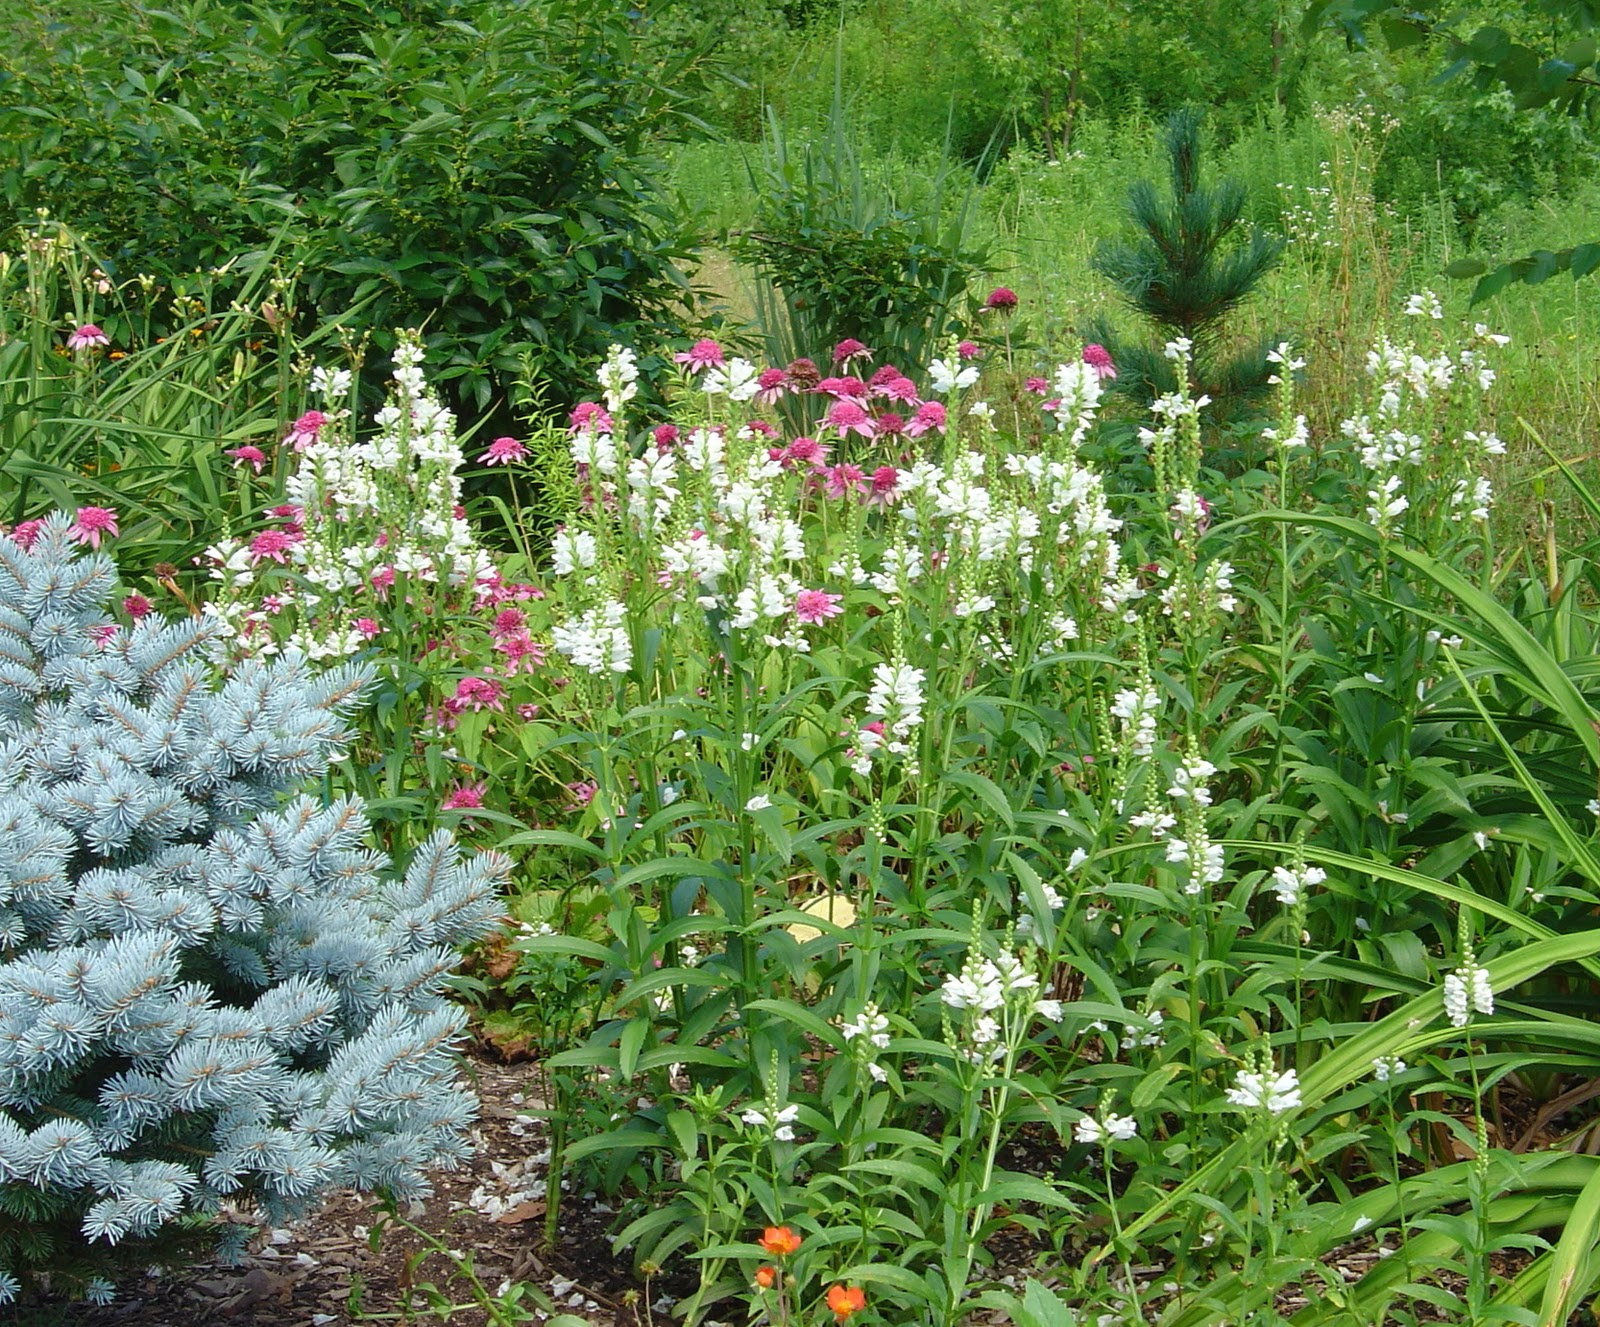 Plant Inventory at 20 Timothy : Physostegia / Obedient Plant